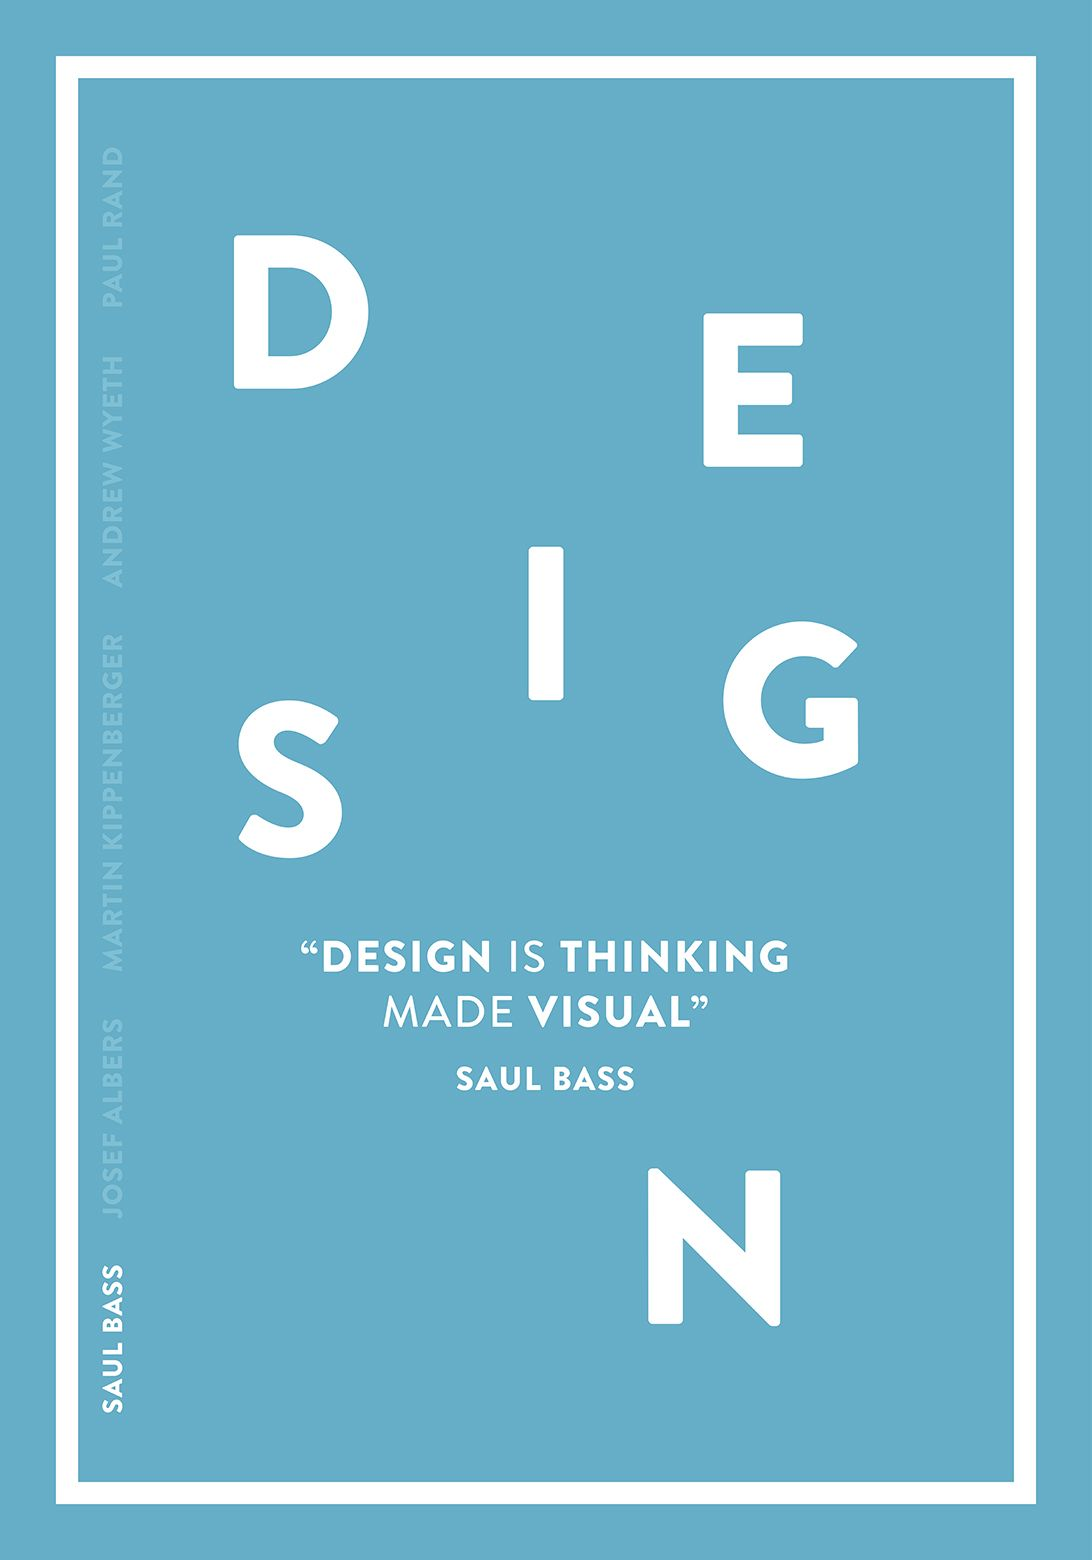 Graphic design poster quotes - Typography Inspiration Typography Design Lettering Art Quotes Motivational Quotes Saul Bass Design Quotes Event Posters Editorial Design